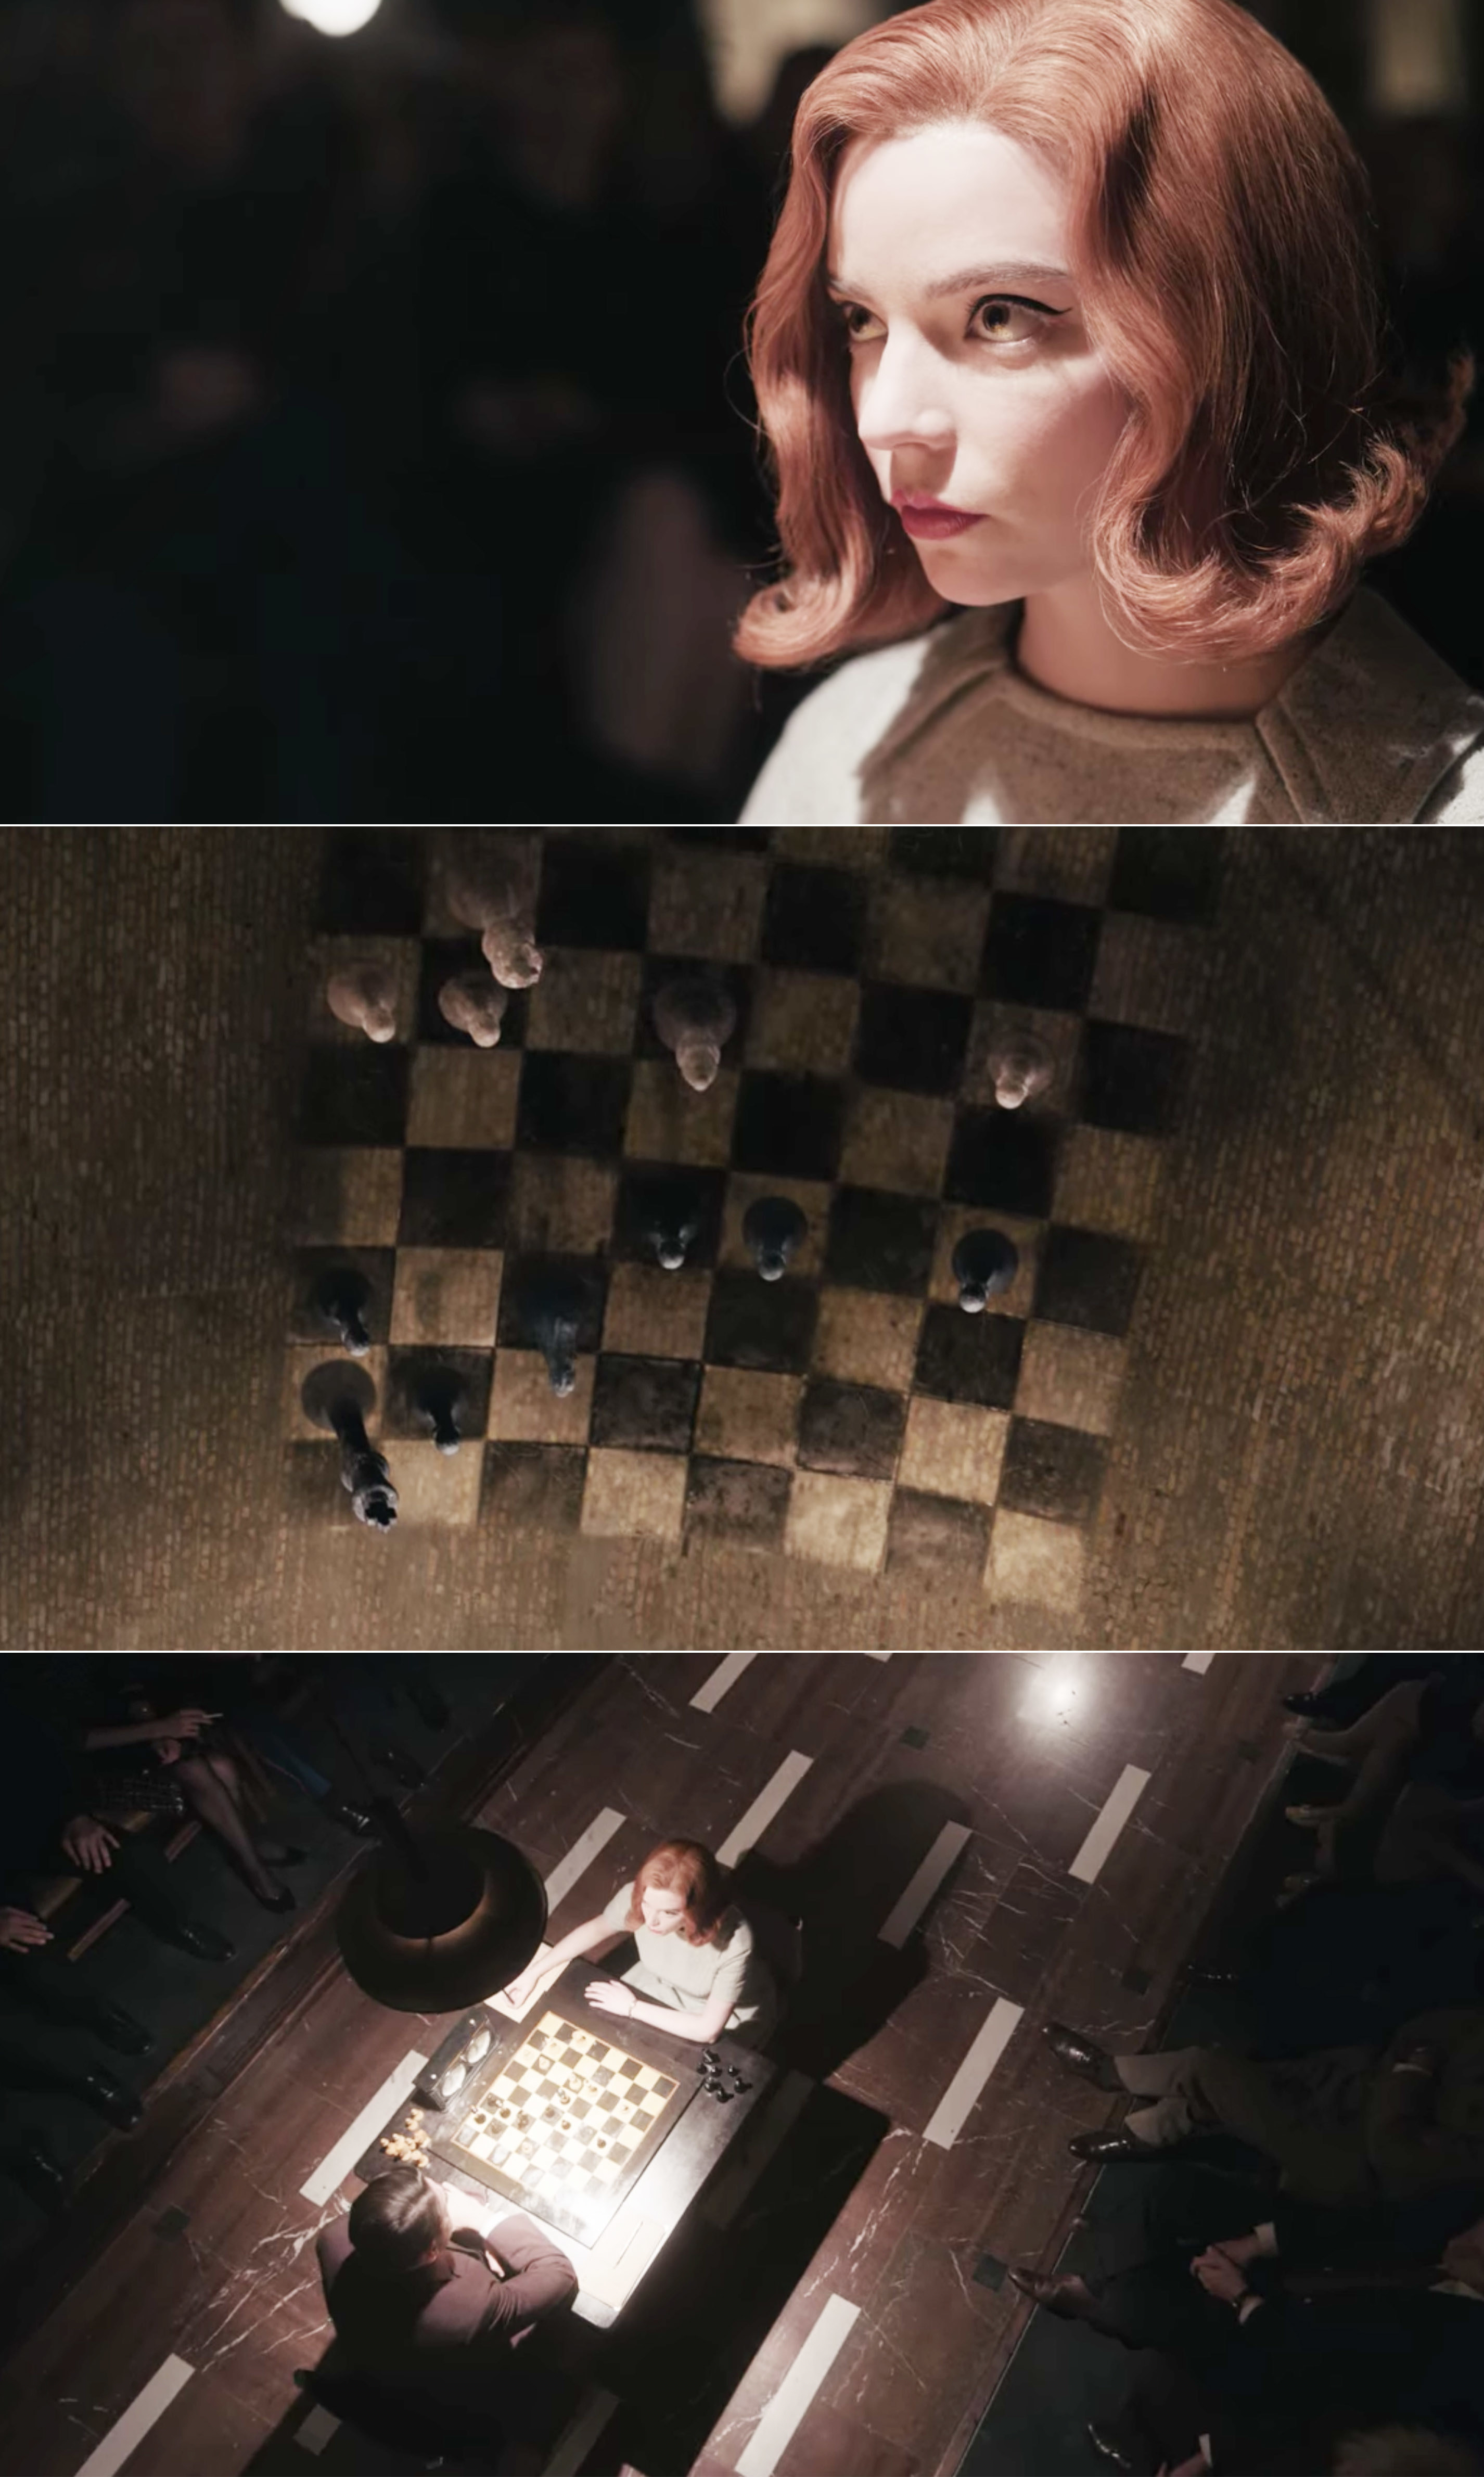 Beth looking at the chessboard while playing Borgov